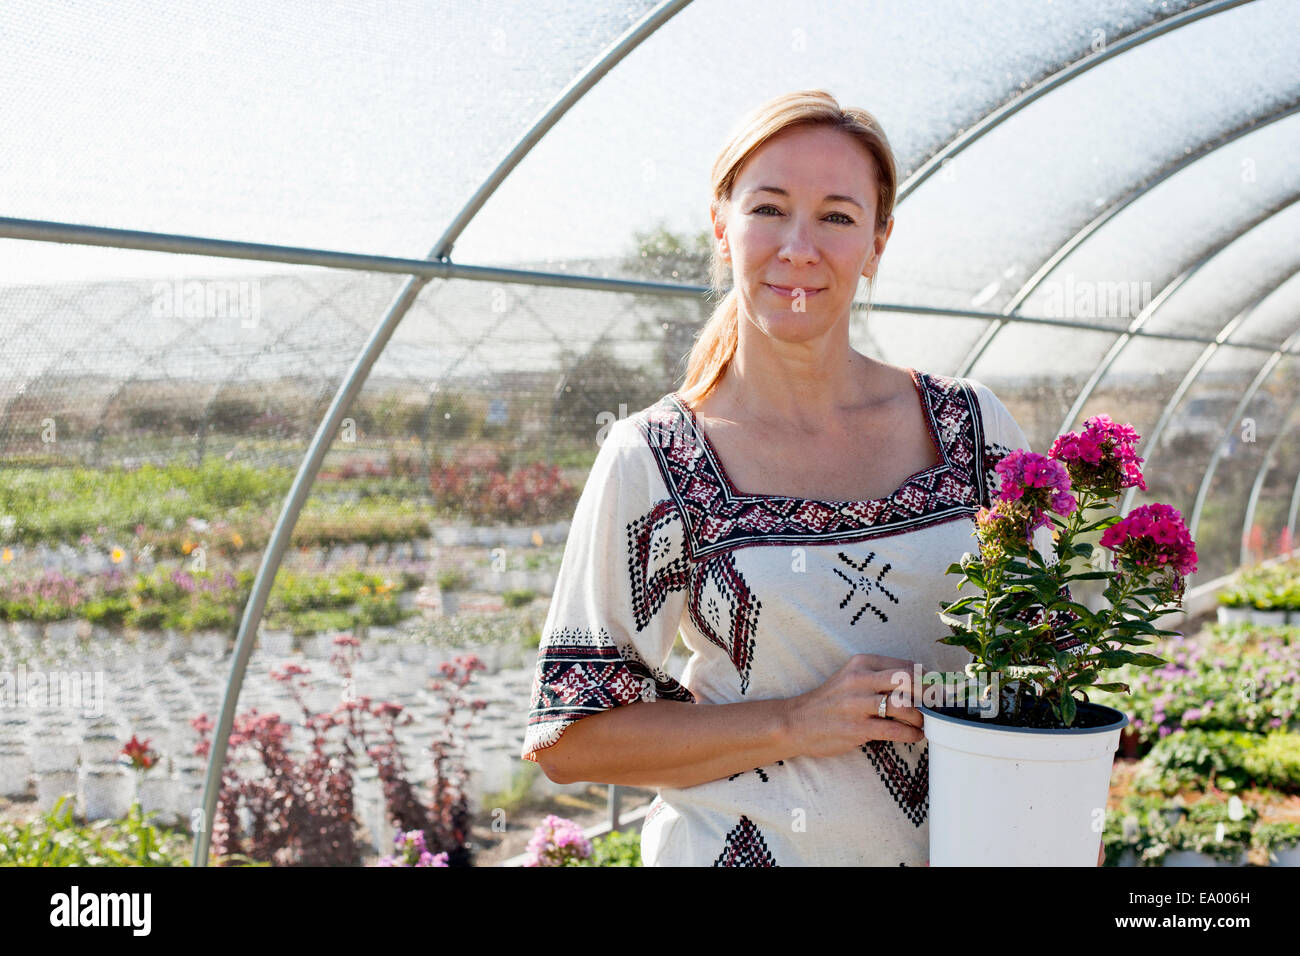 Portrait of mature female customer holding potted plant in plant nursery polytunnel - Stock Image